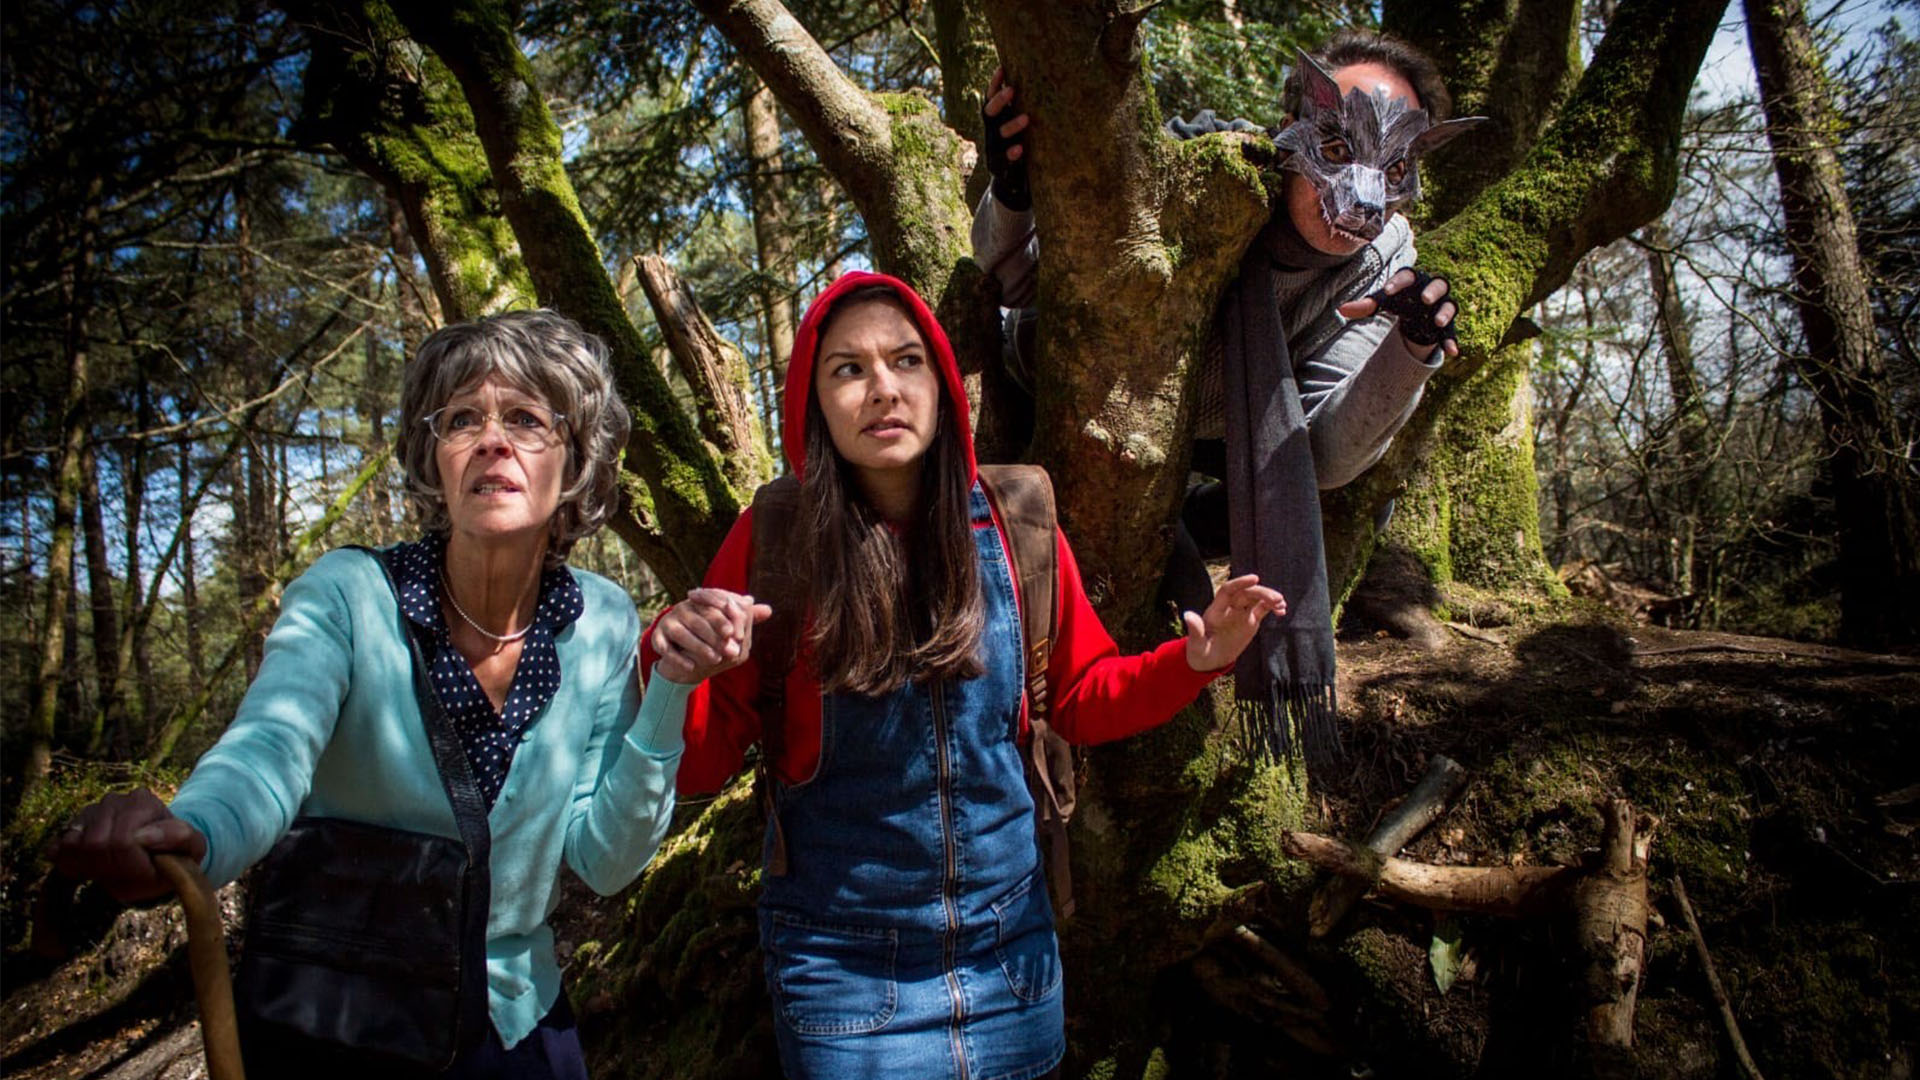 A modern Little Red Riding Hood and grandma are walking through the forest, concerned looks on their faces. A wolf is watching them from a tree right behind them, portrayed by an actor wearing grey clothing, a grey scarf, fingerless gloves and a very intricate and geometric wolf's mask